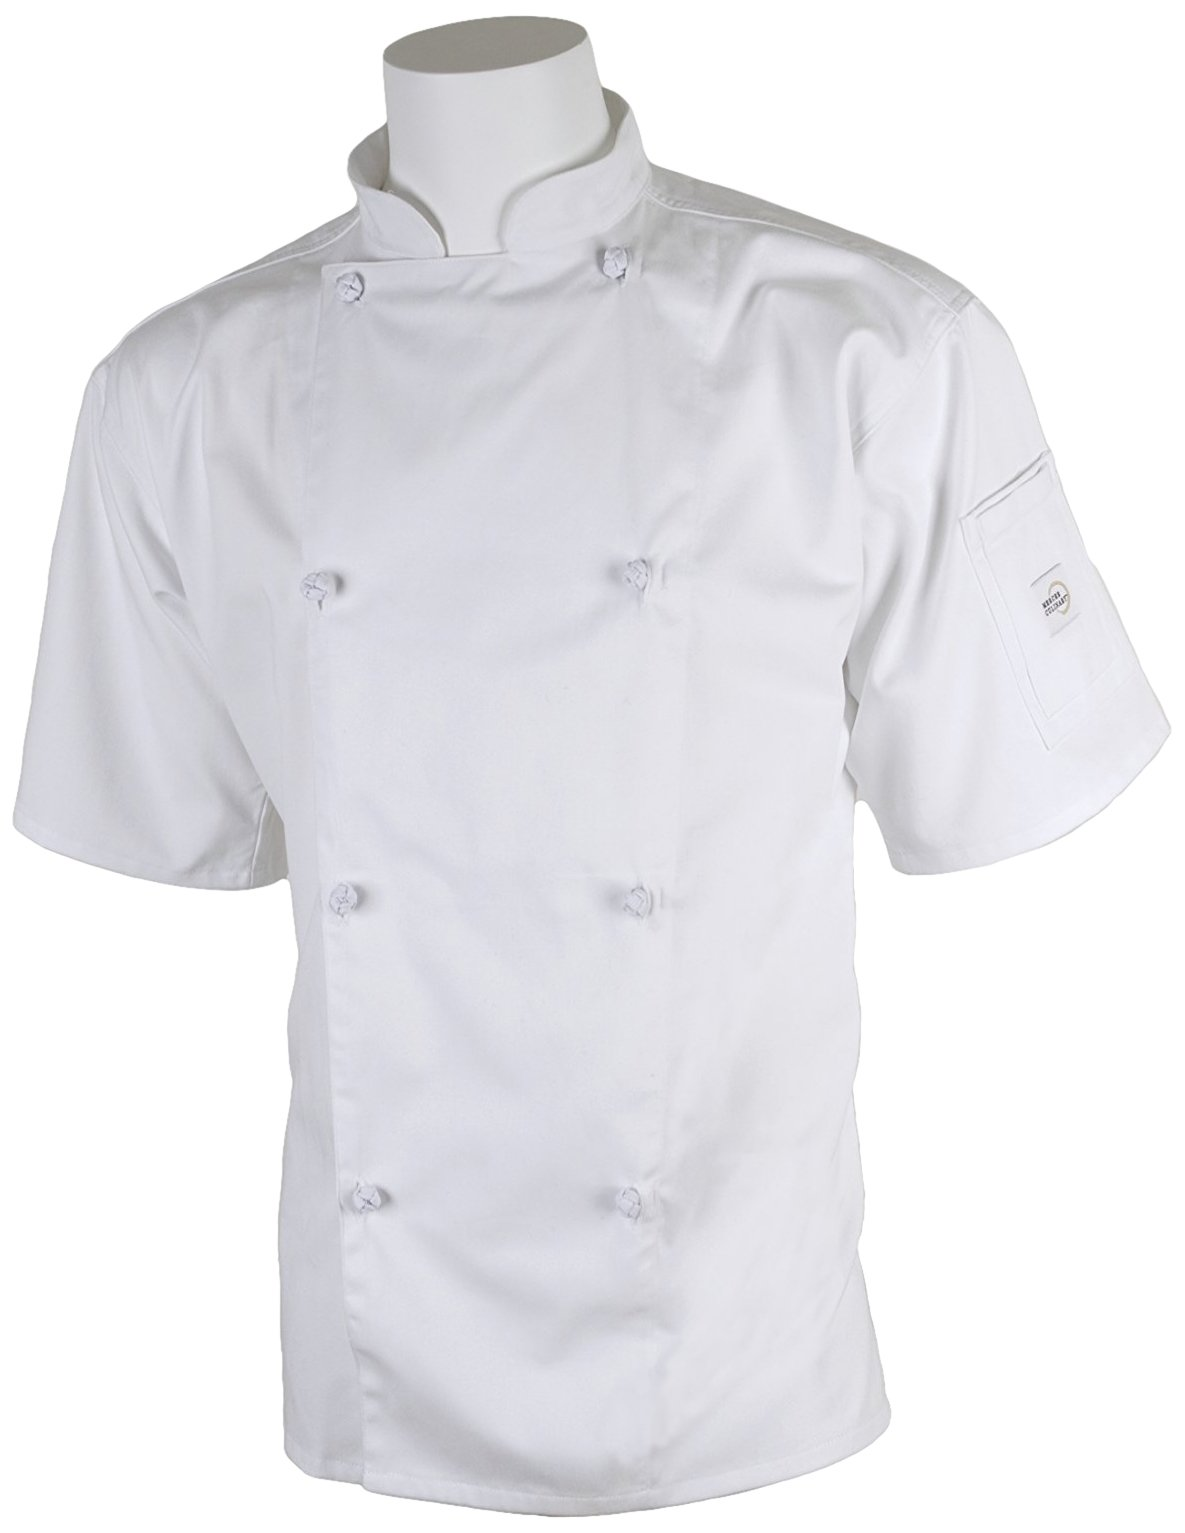 Mercer Culinary M61022WHXS Genesis Men's Short Sleeve Chef Jacket with Cloth Knot Buttons, X-Small, White